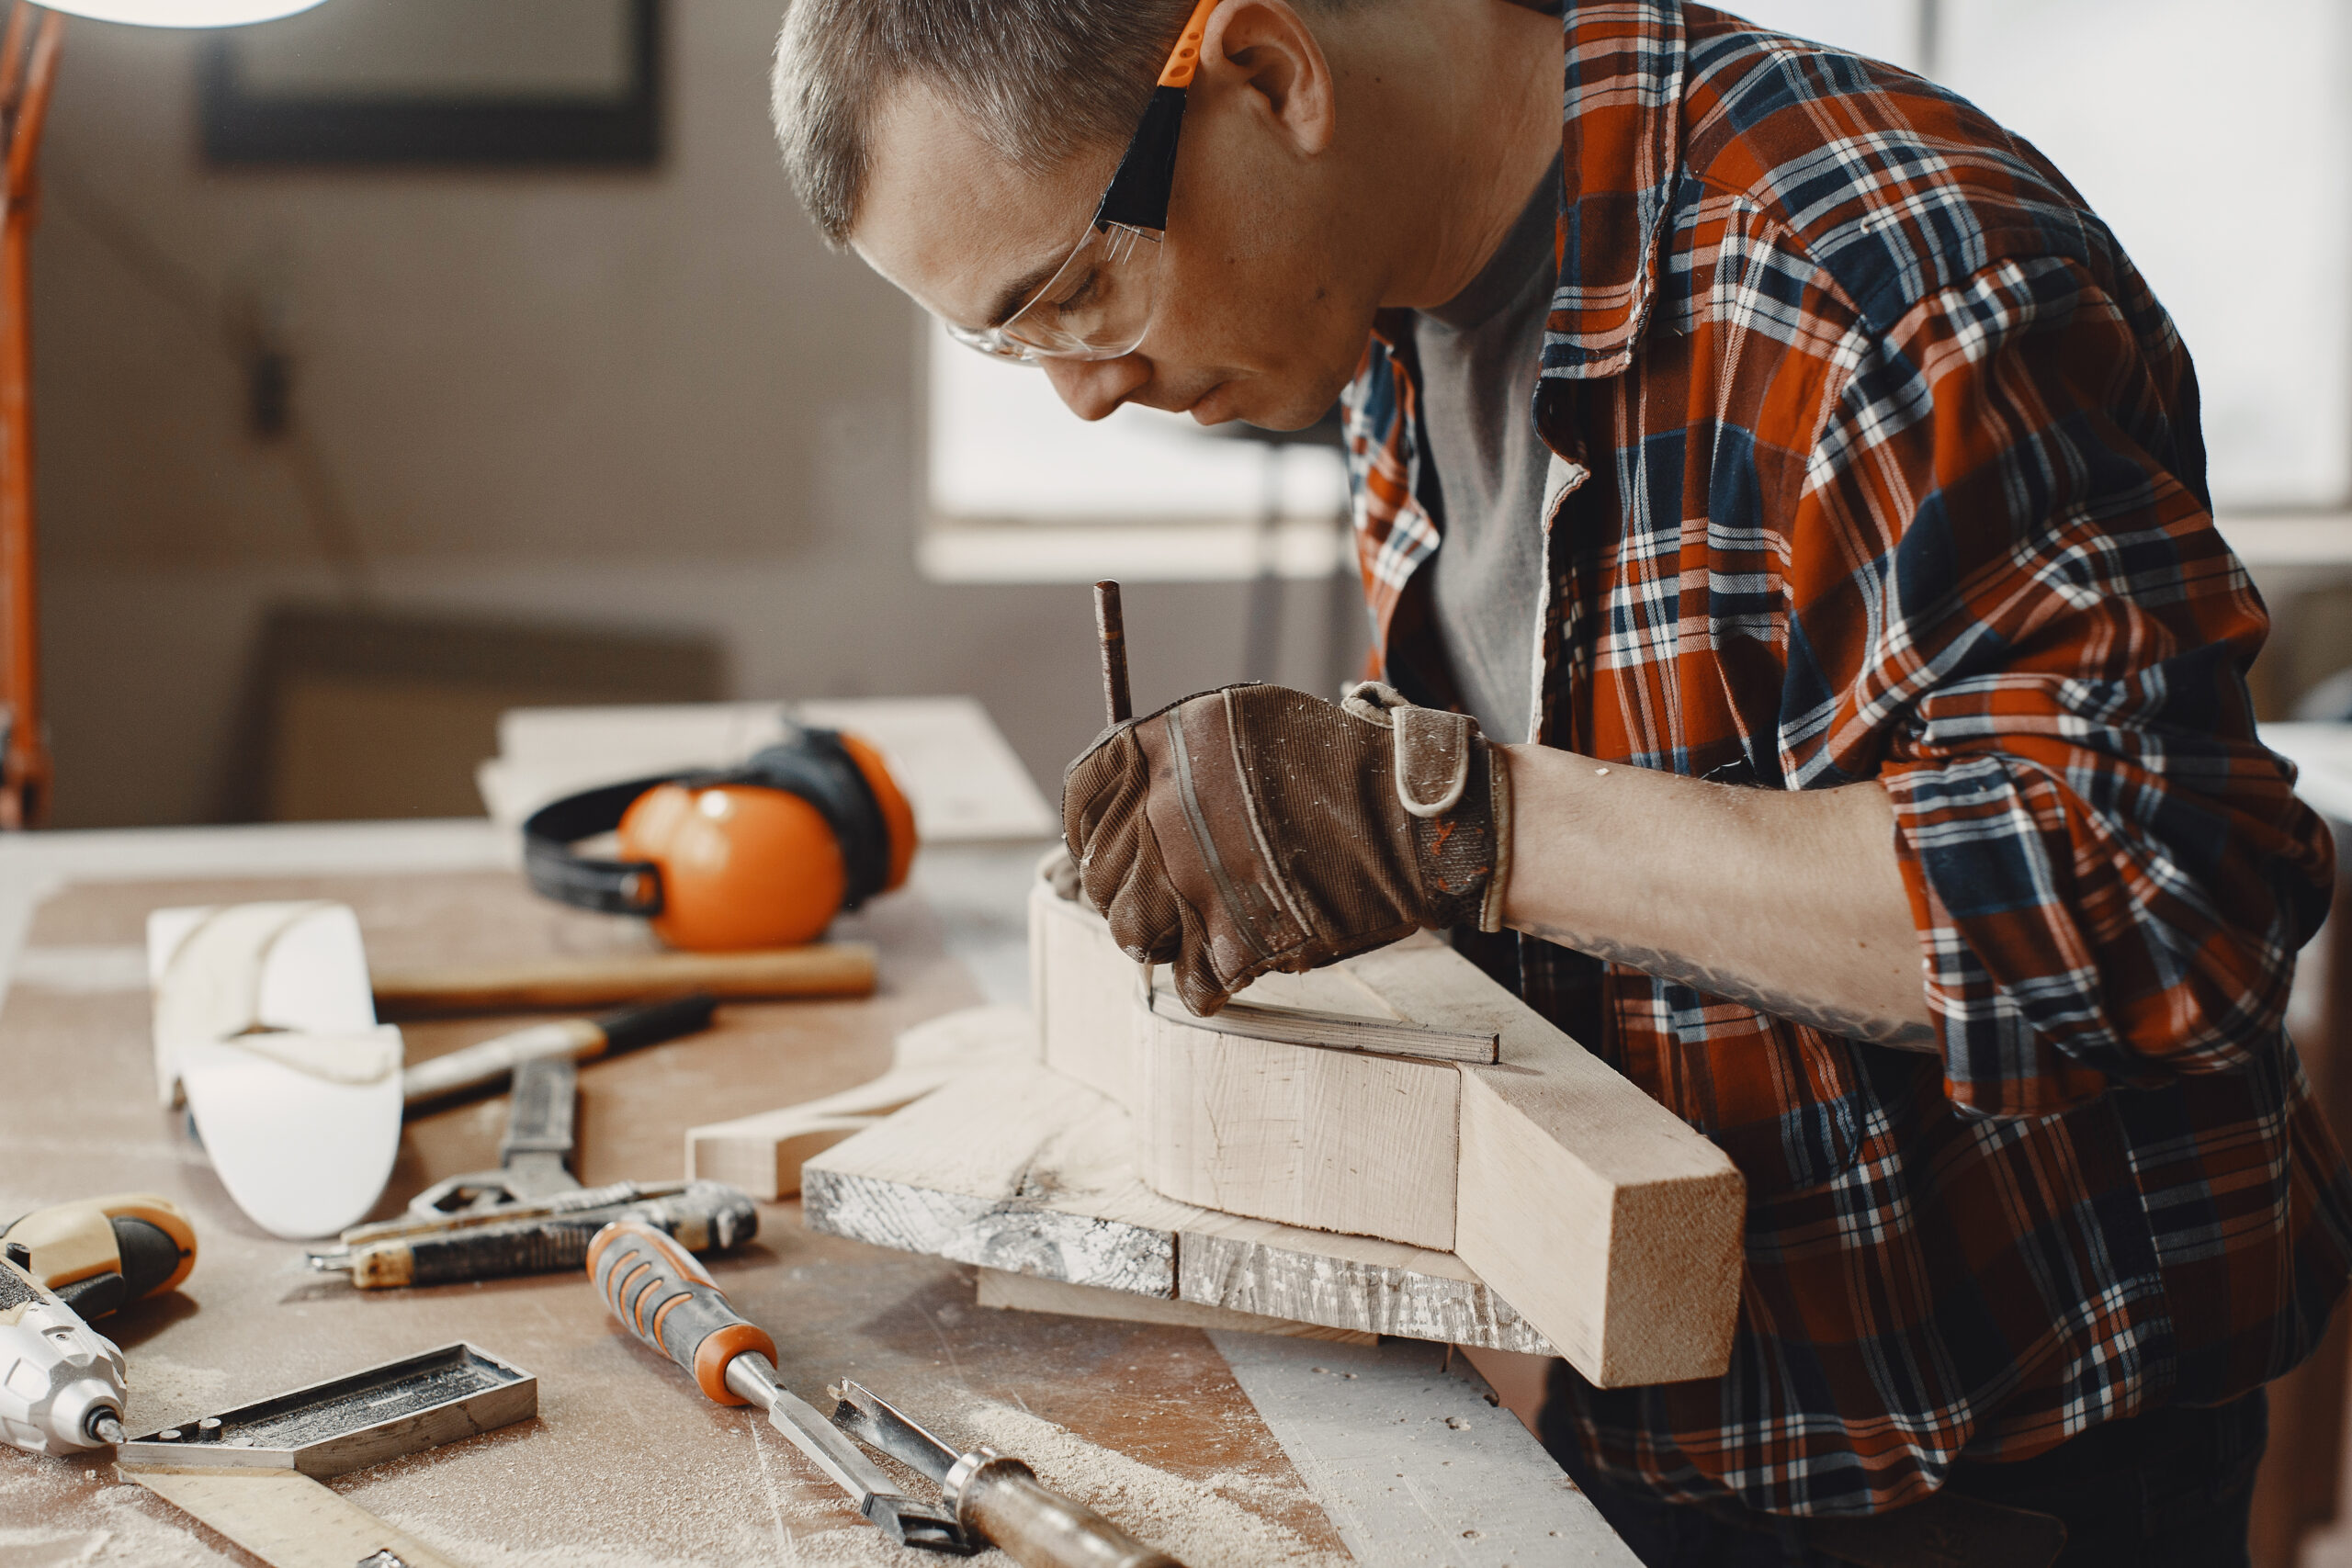 Craftsman cutting a wooden plank. Worker with wood. Man in a cell shirt.